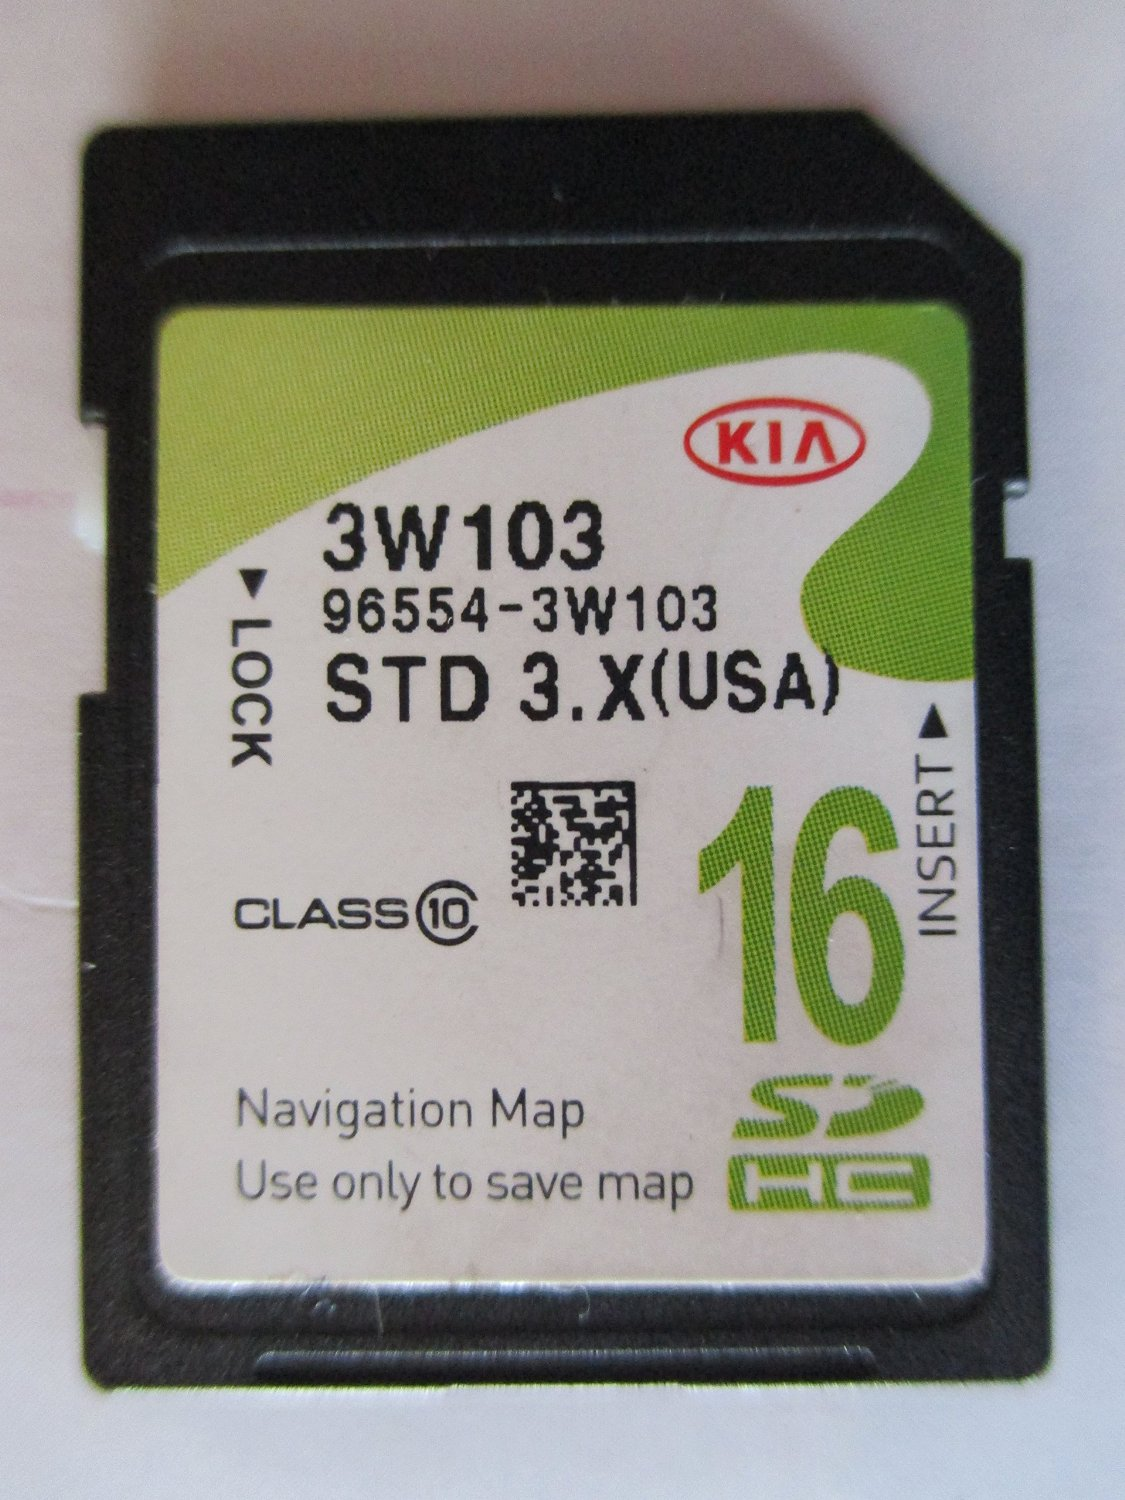 3W103 2014 2015 2016 KIA SPORTAGE Navigation MAP Sd Card ,GPS UPDATE , U.S.A OEM PART # 96554-3W103 3.X 16GB